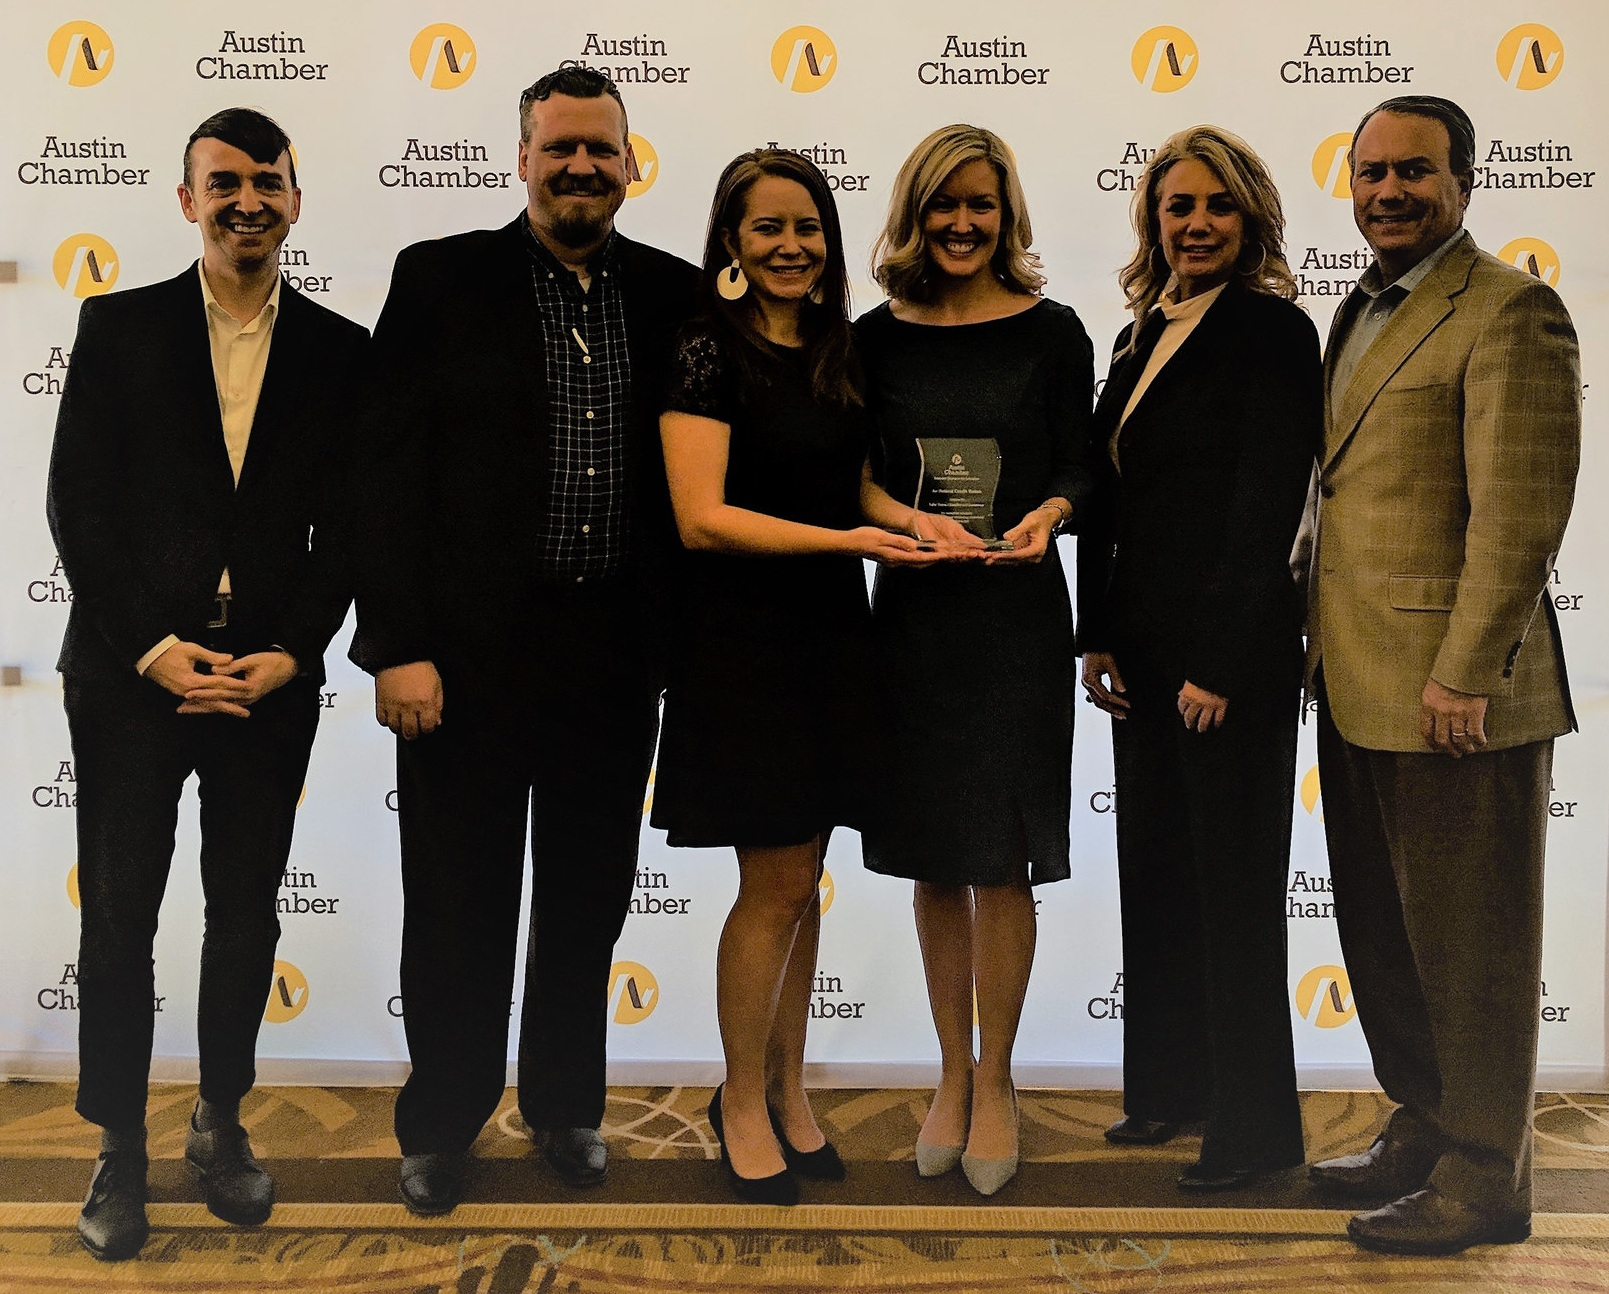 Pictured (left to right):  Stephen Miller , A+FCU Vice President of Operations;  Billy O'Briant , A+ Federal Credit Union Business Development Officer;  Emily Spiller , A+ Federal Credit Union Branch Manager;  Katie Kauffman , LTISD Director of Development and Corporate Relations;  Clarissa Cullison , Lake Travis High School business teacher/Lake Travis Junior Chamber of Commerce sponsor; and  Matt Womack , Lake Travis Chamber of Commerce Chairman.